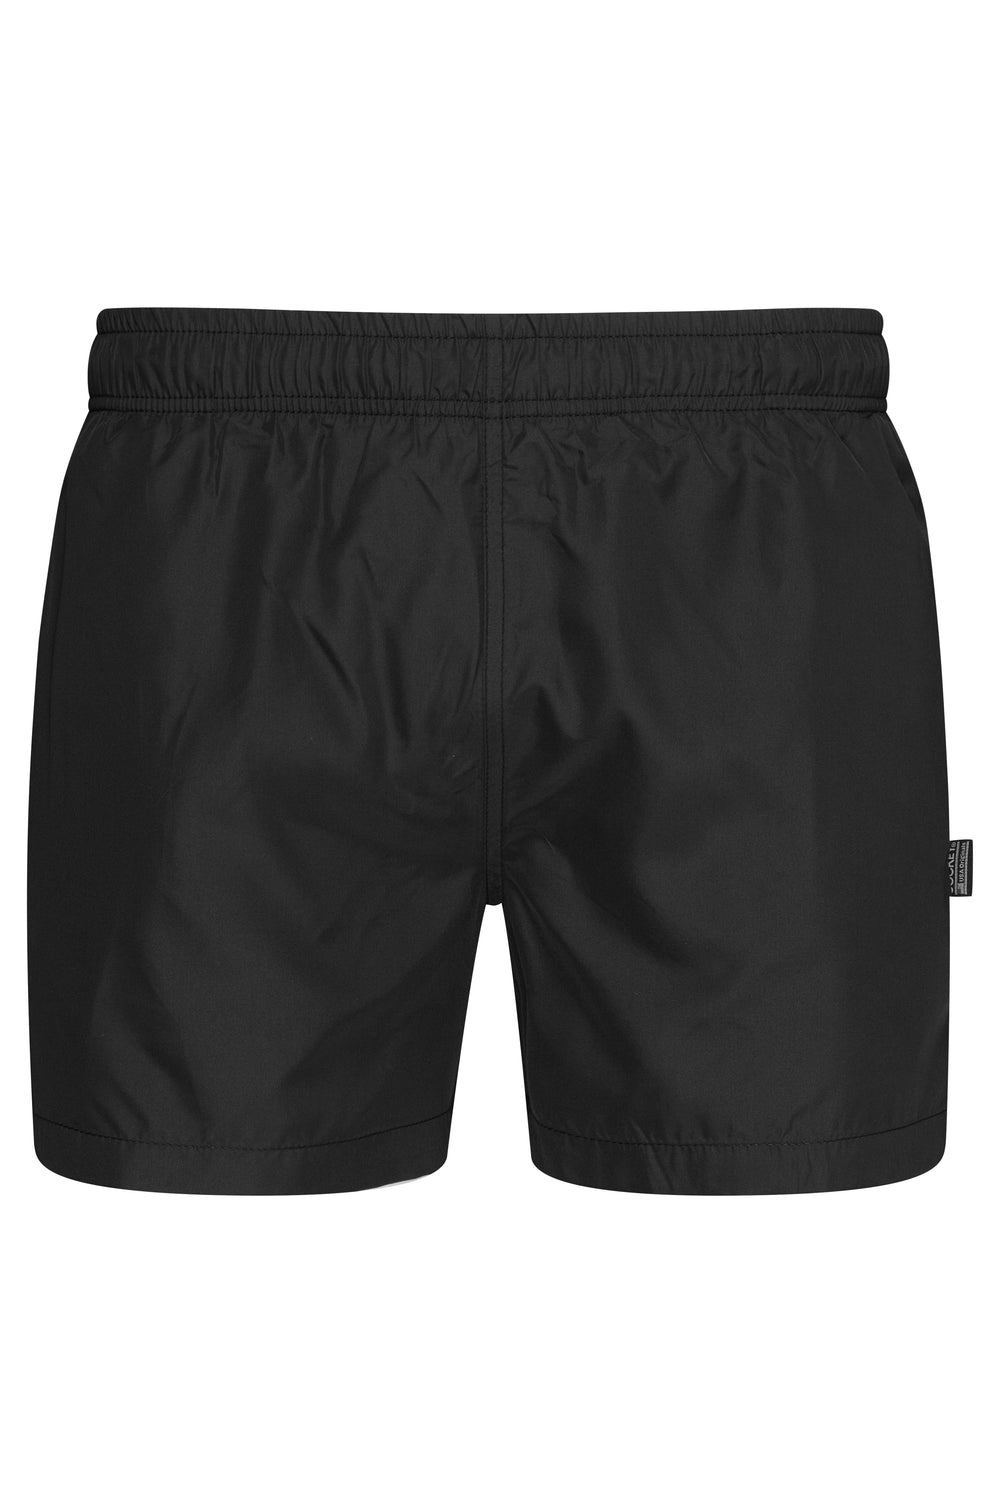 Jockey® Essential Swim Short